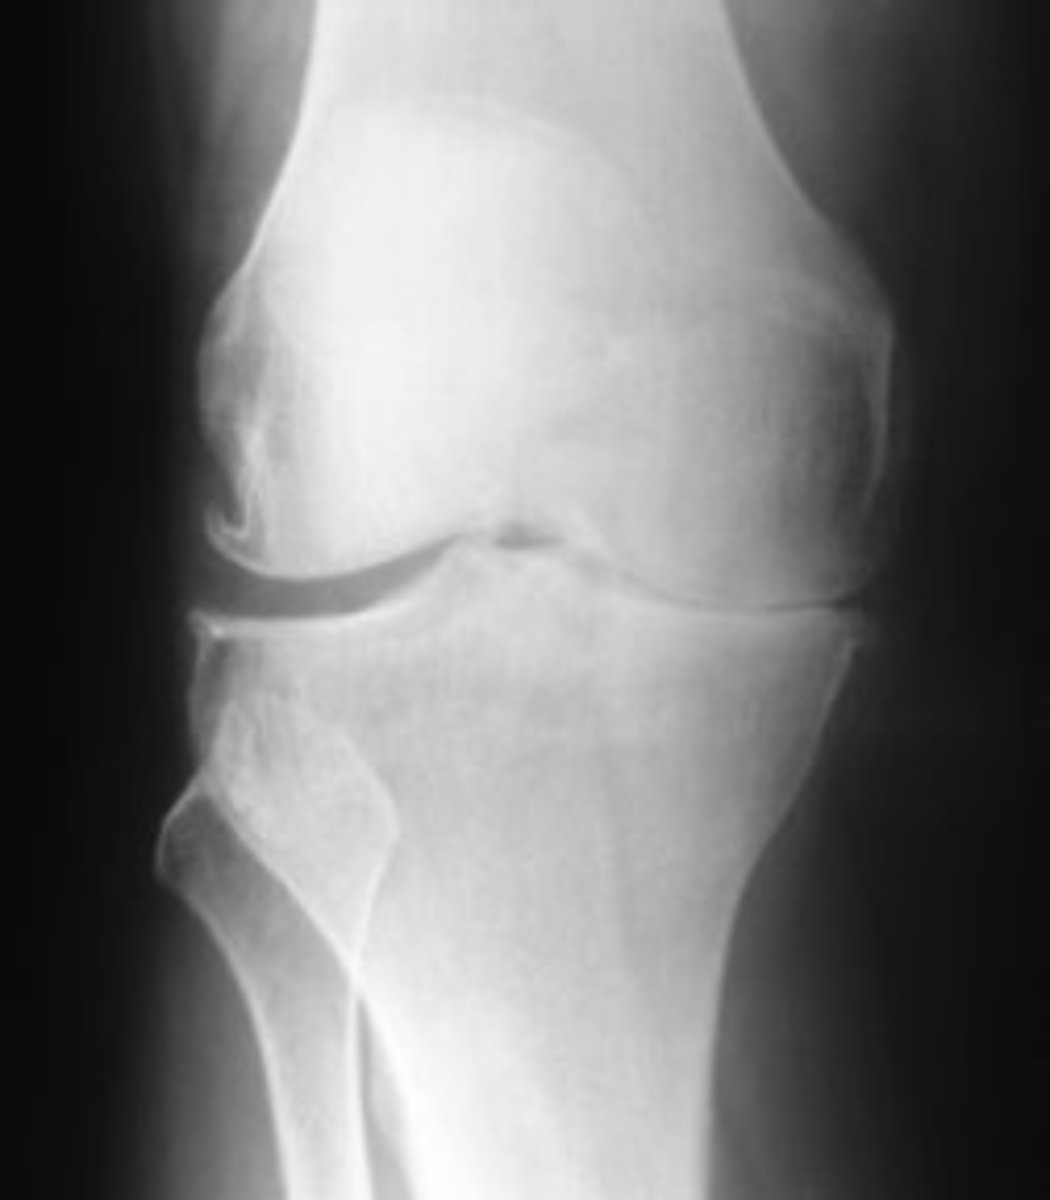 Knee X-ray - Understanding the signs of Arthritis | hubpages